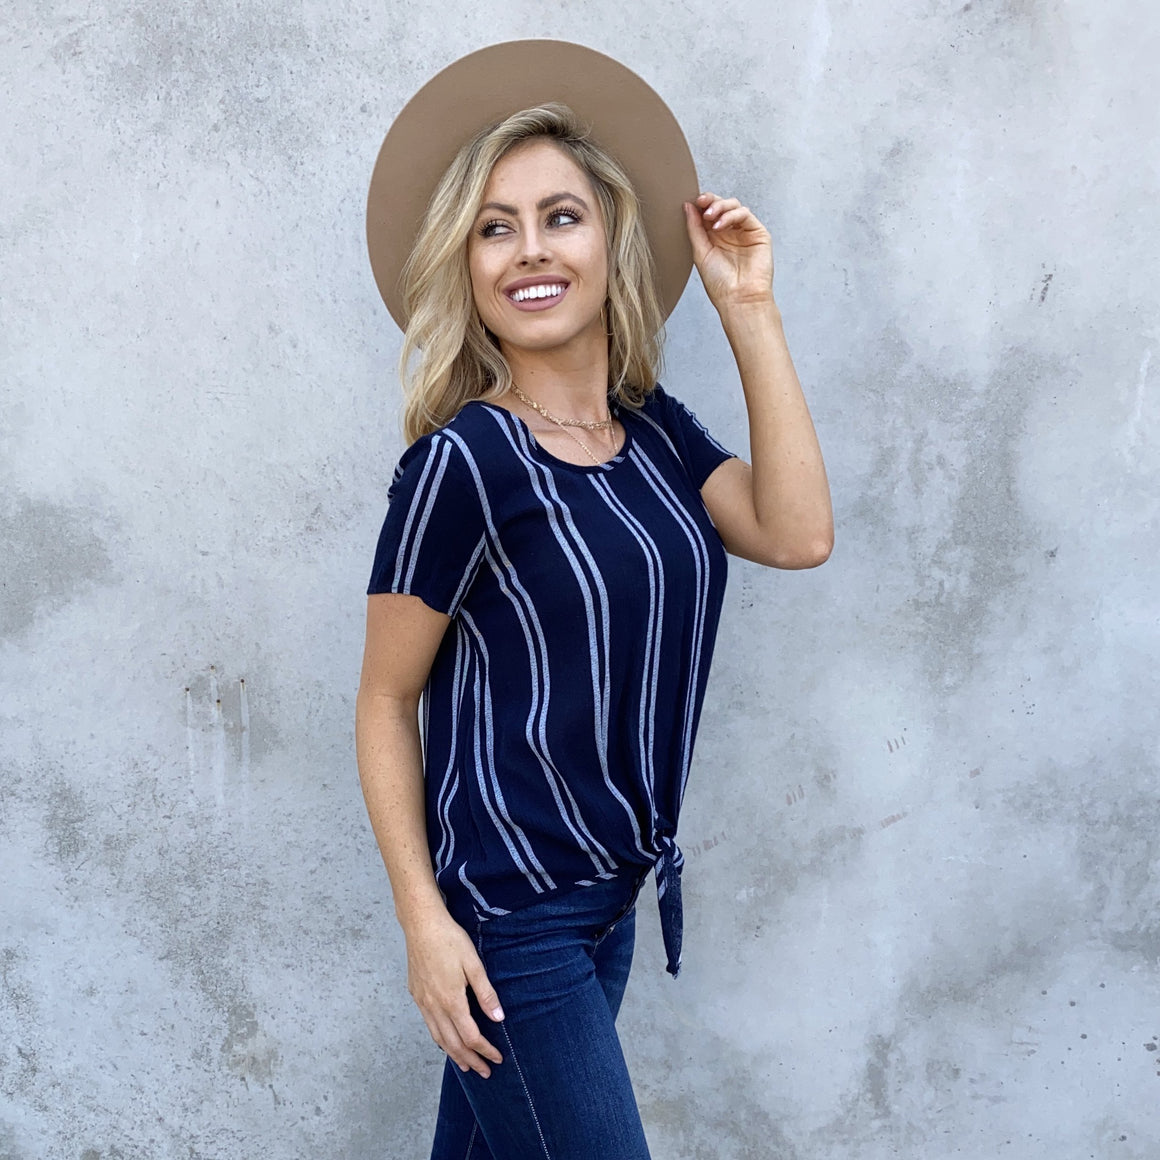 Love of Live Navy Blue Stripe Tie Blouse - Dainty Hooligan